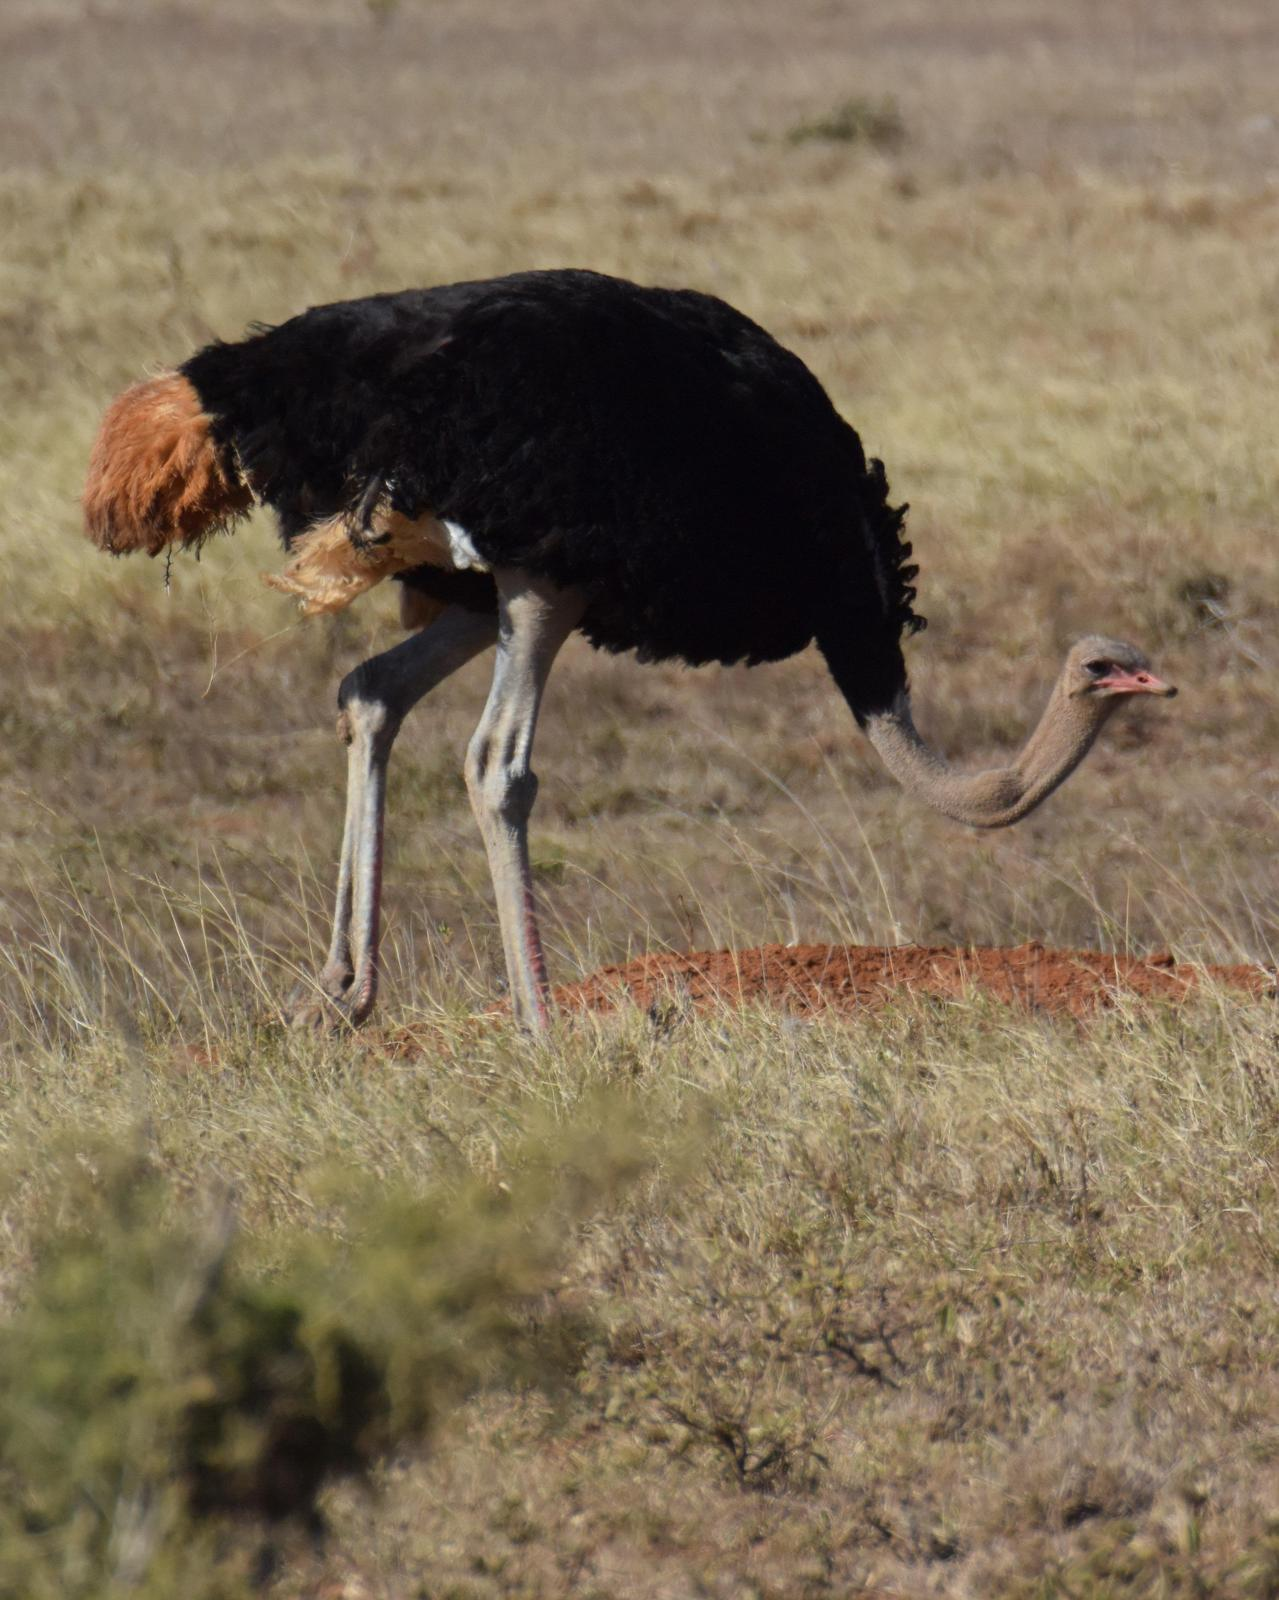 Common Ostrich Photo by Steve Percival